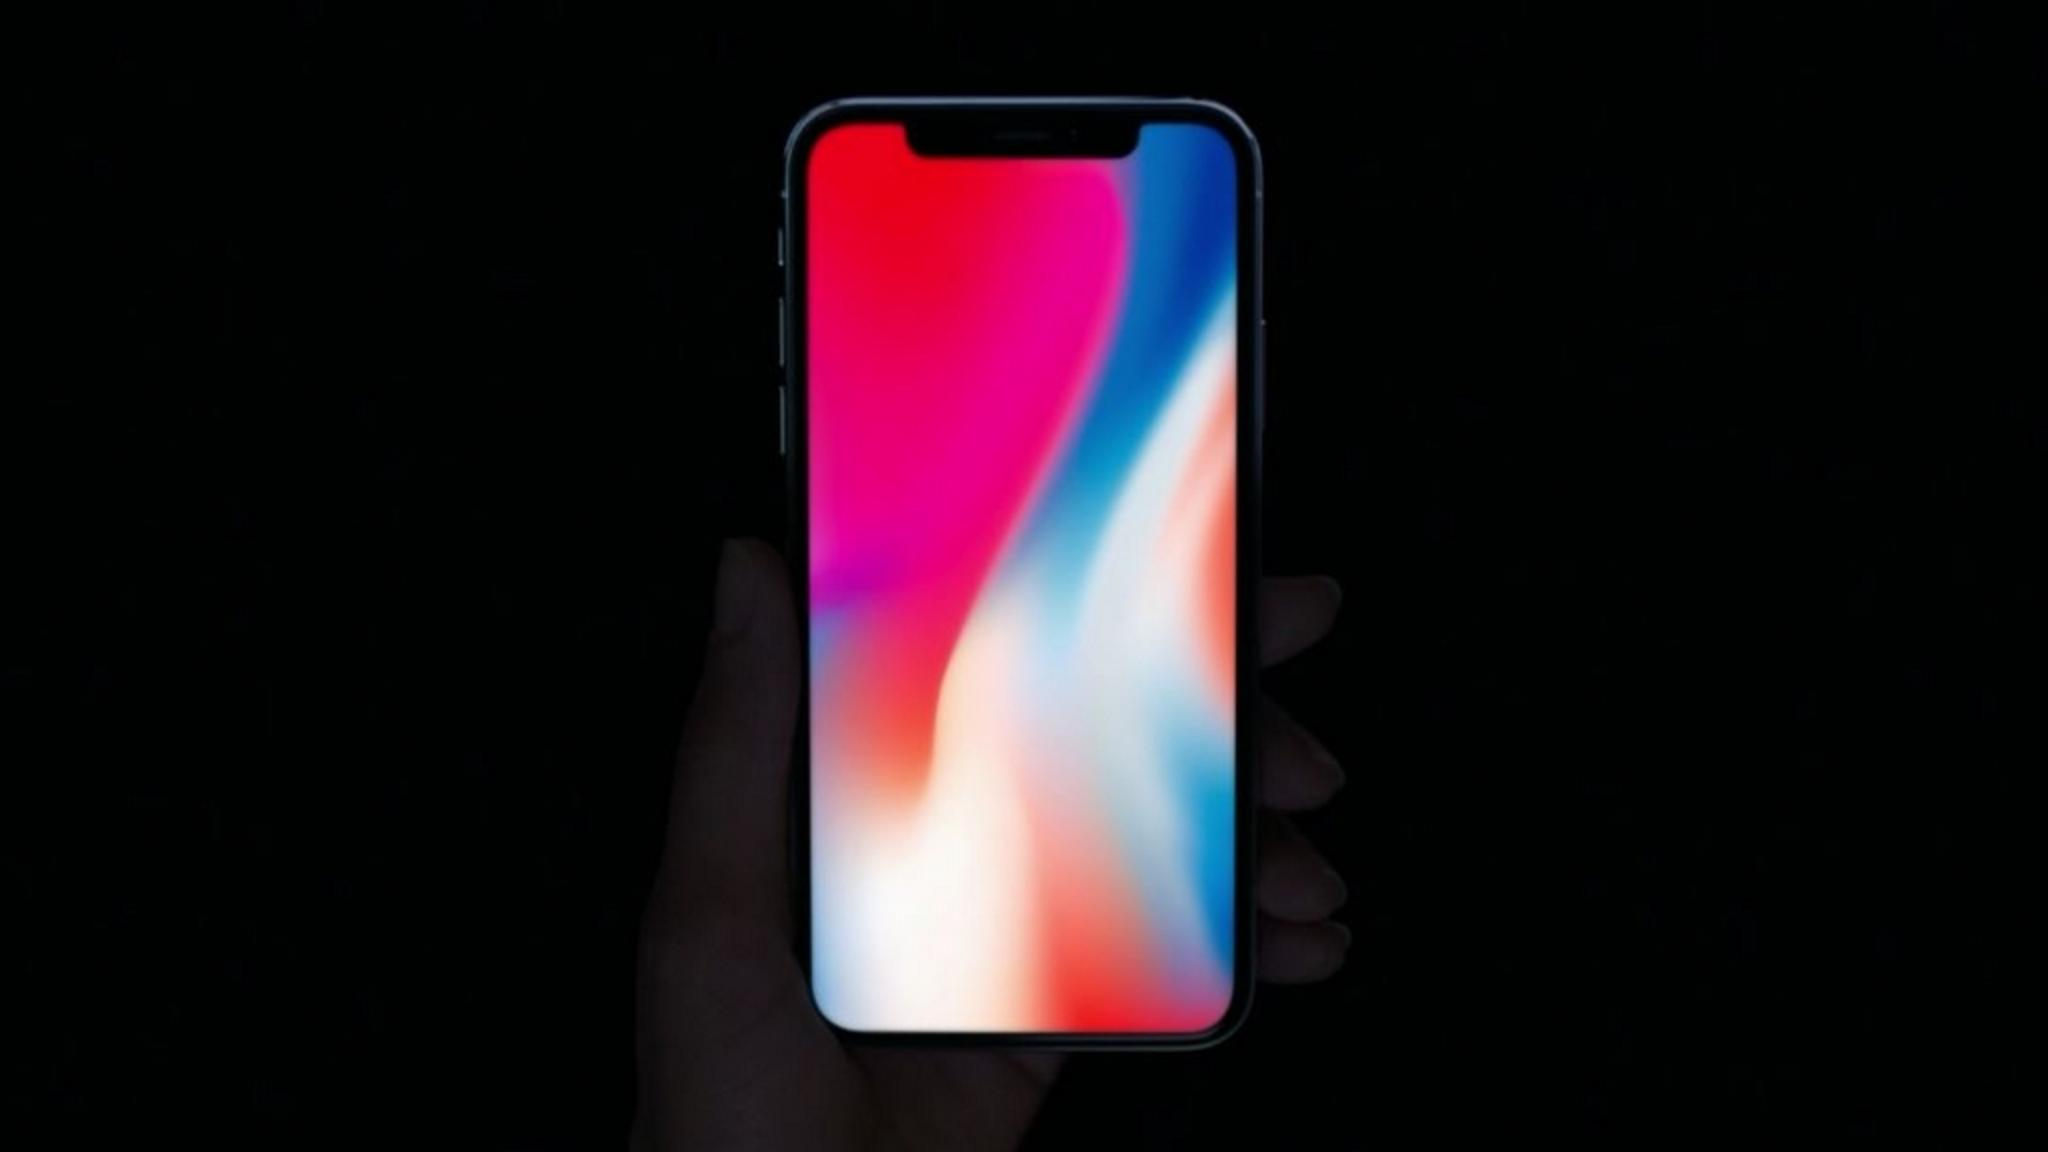 Das iPhone X.